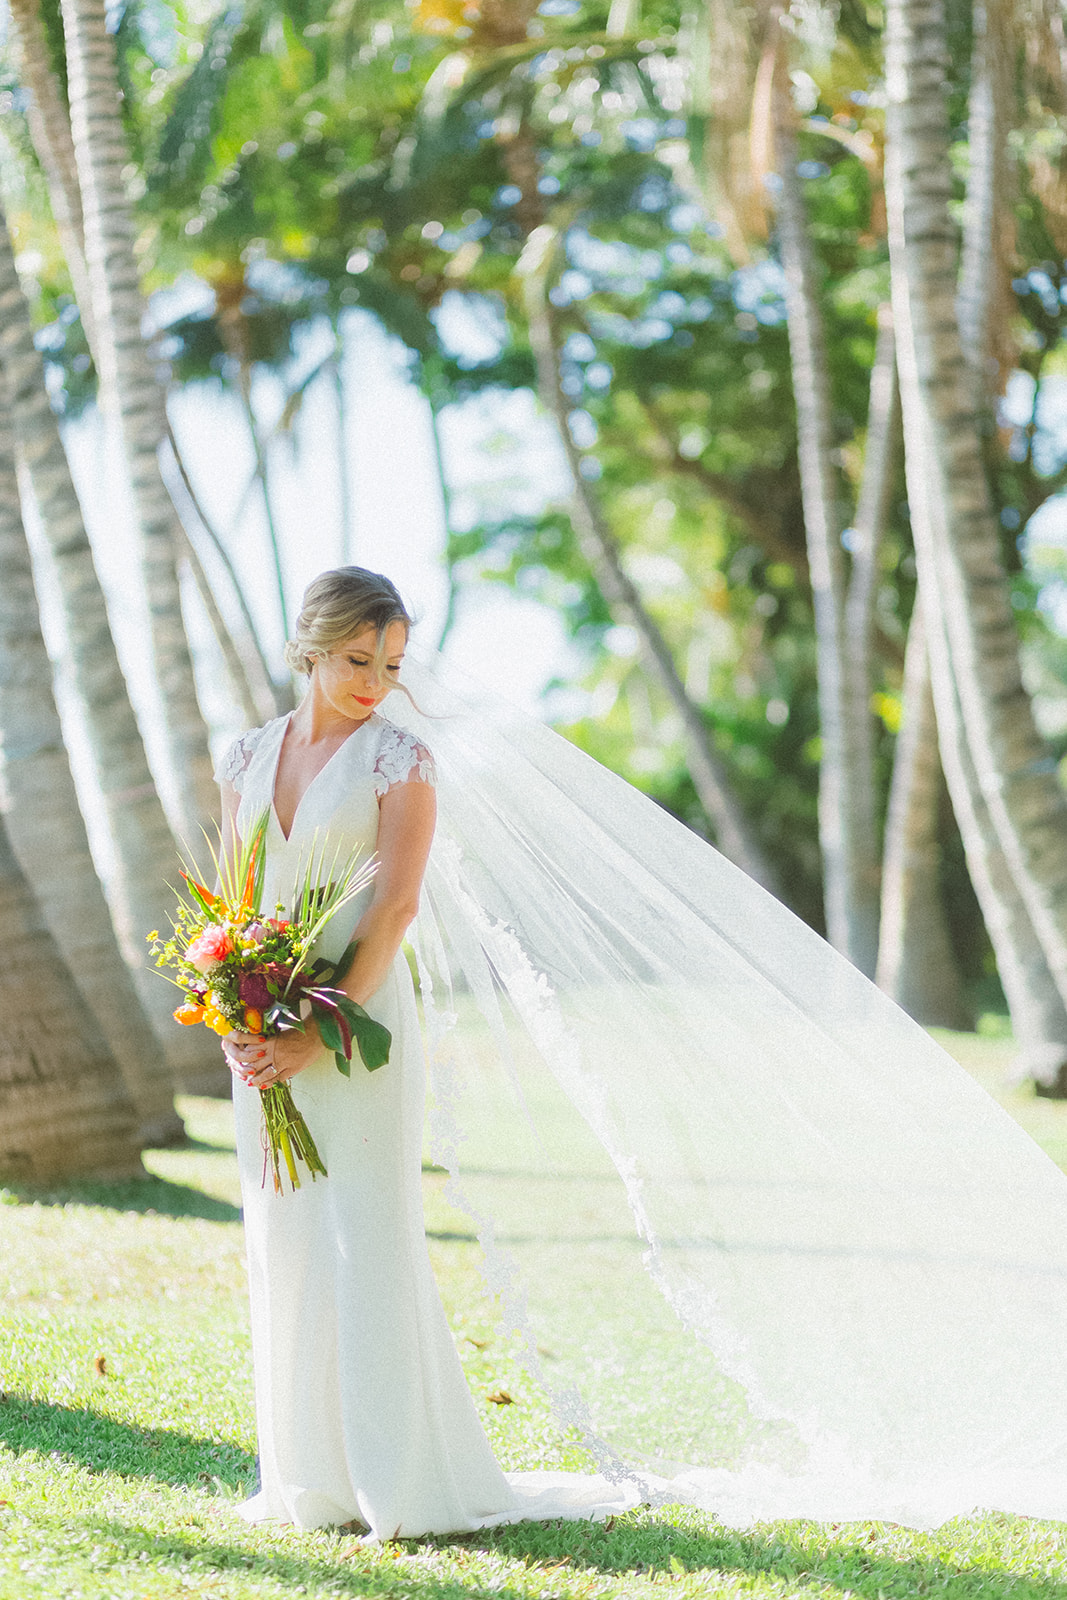 Fun + Festive Tropical Destination Wedding